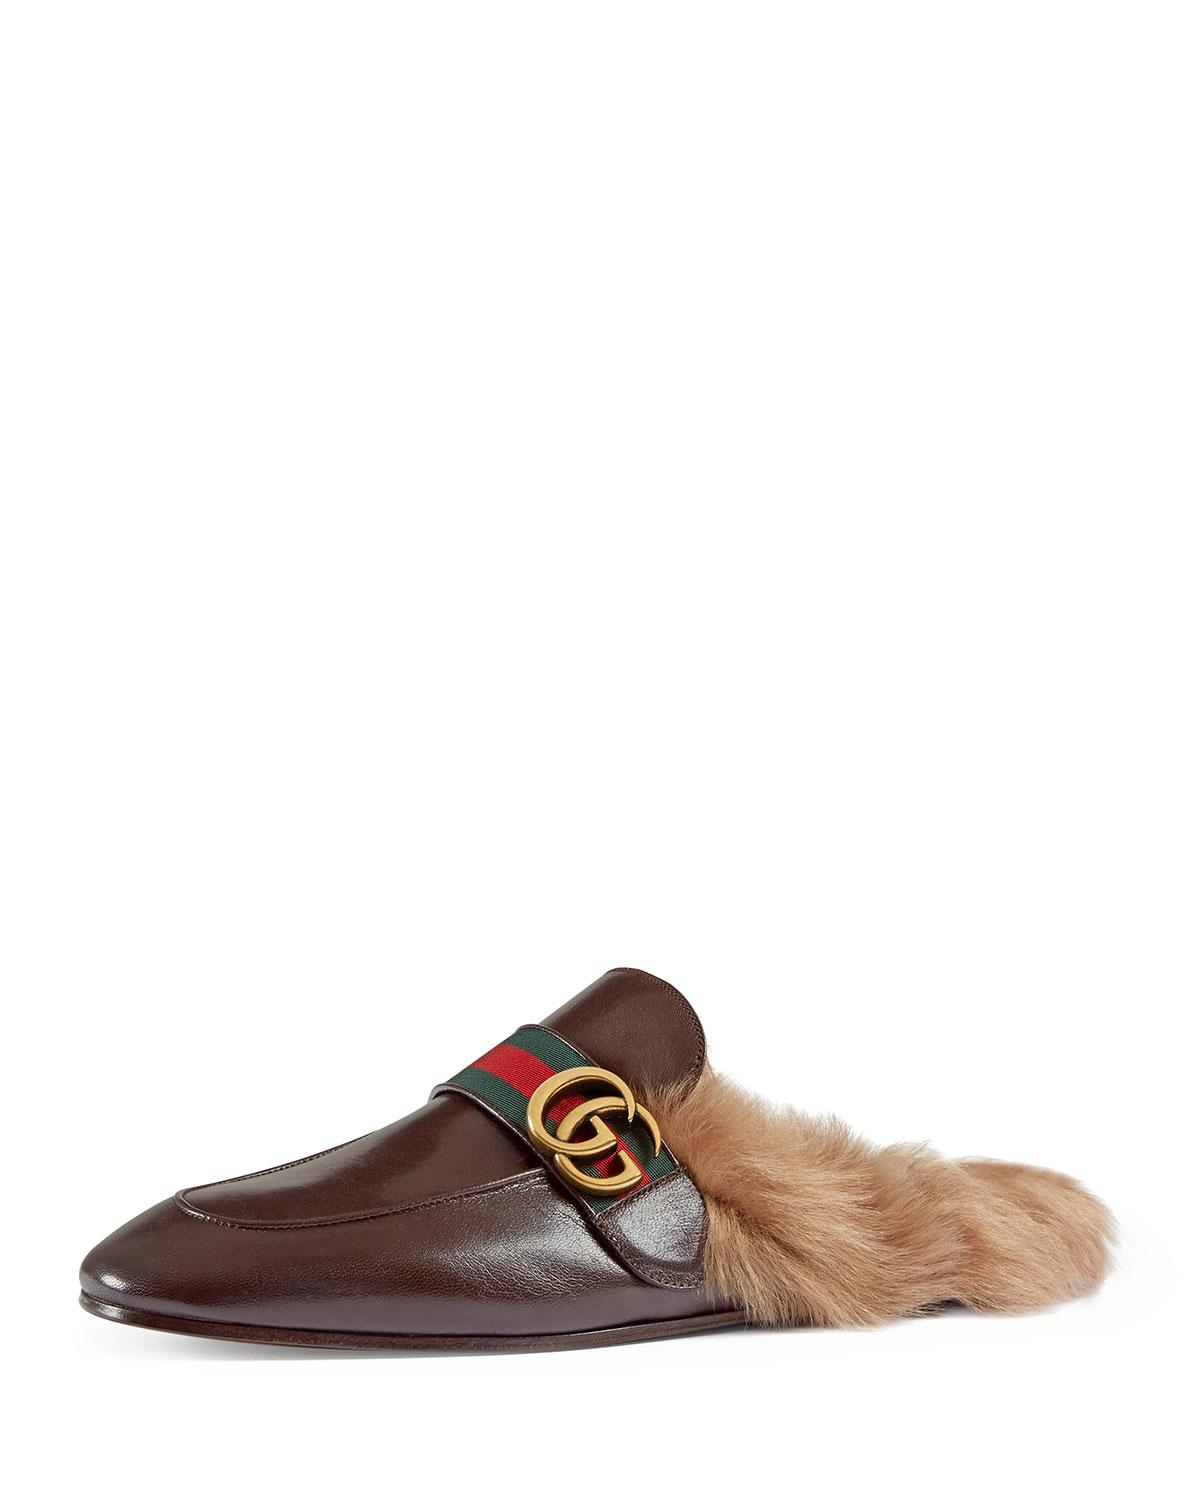 eaa12bfd615 Gucci New Princetown Leather Fur-lined Slipper With Double G in ...